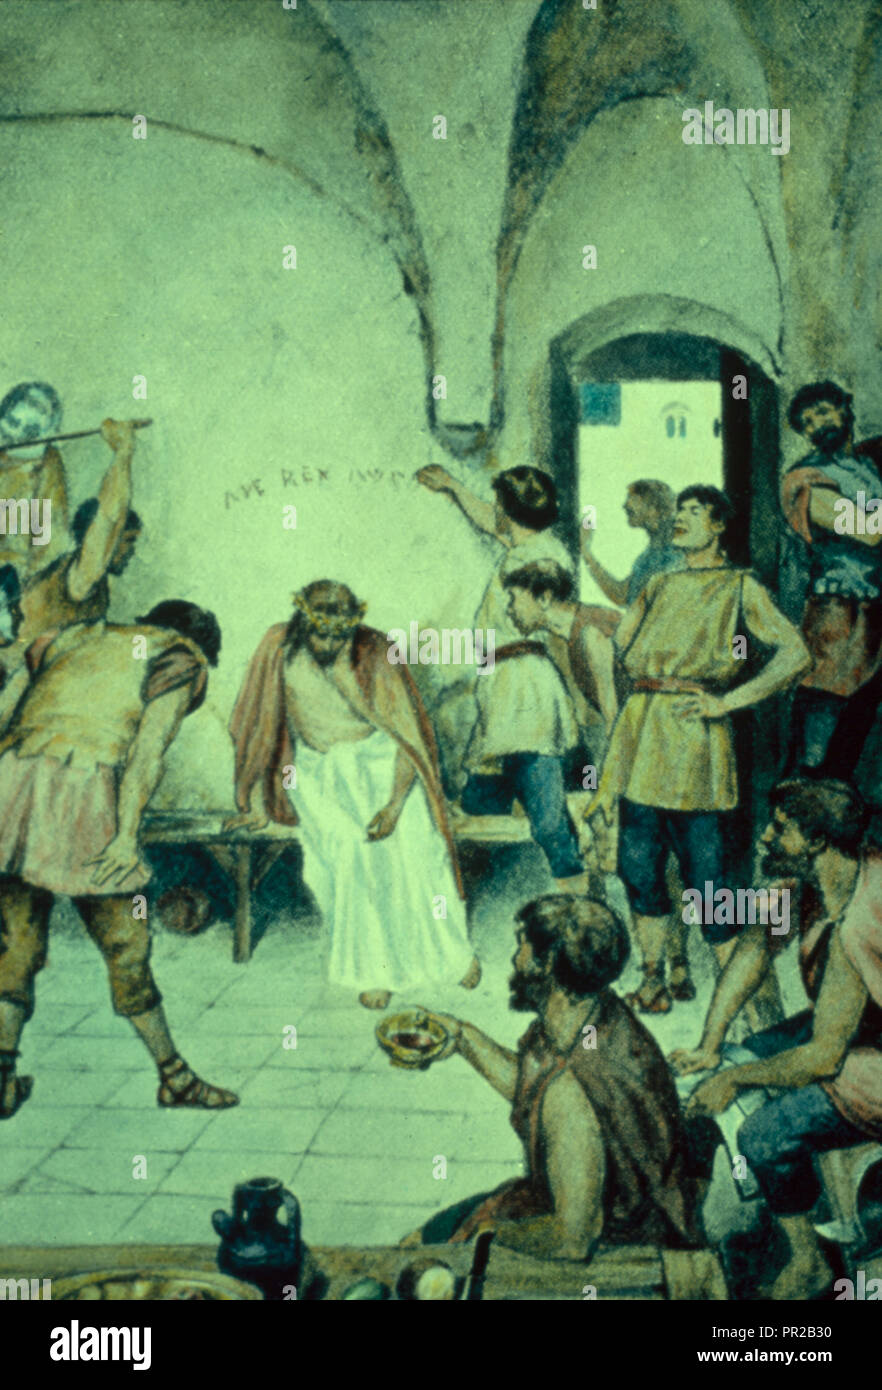 Matt. 2727-30. Jesus, arrayed in mock state, is brutally entreated by the Roman soldiers. 1950 - Stock Image